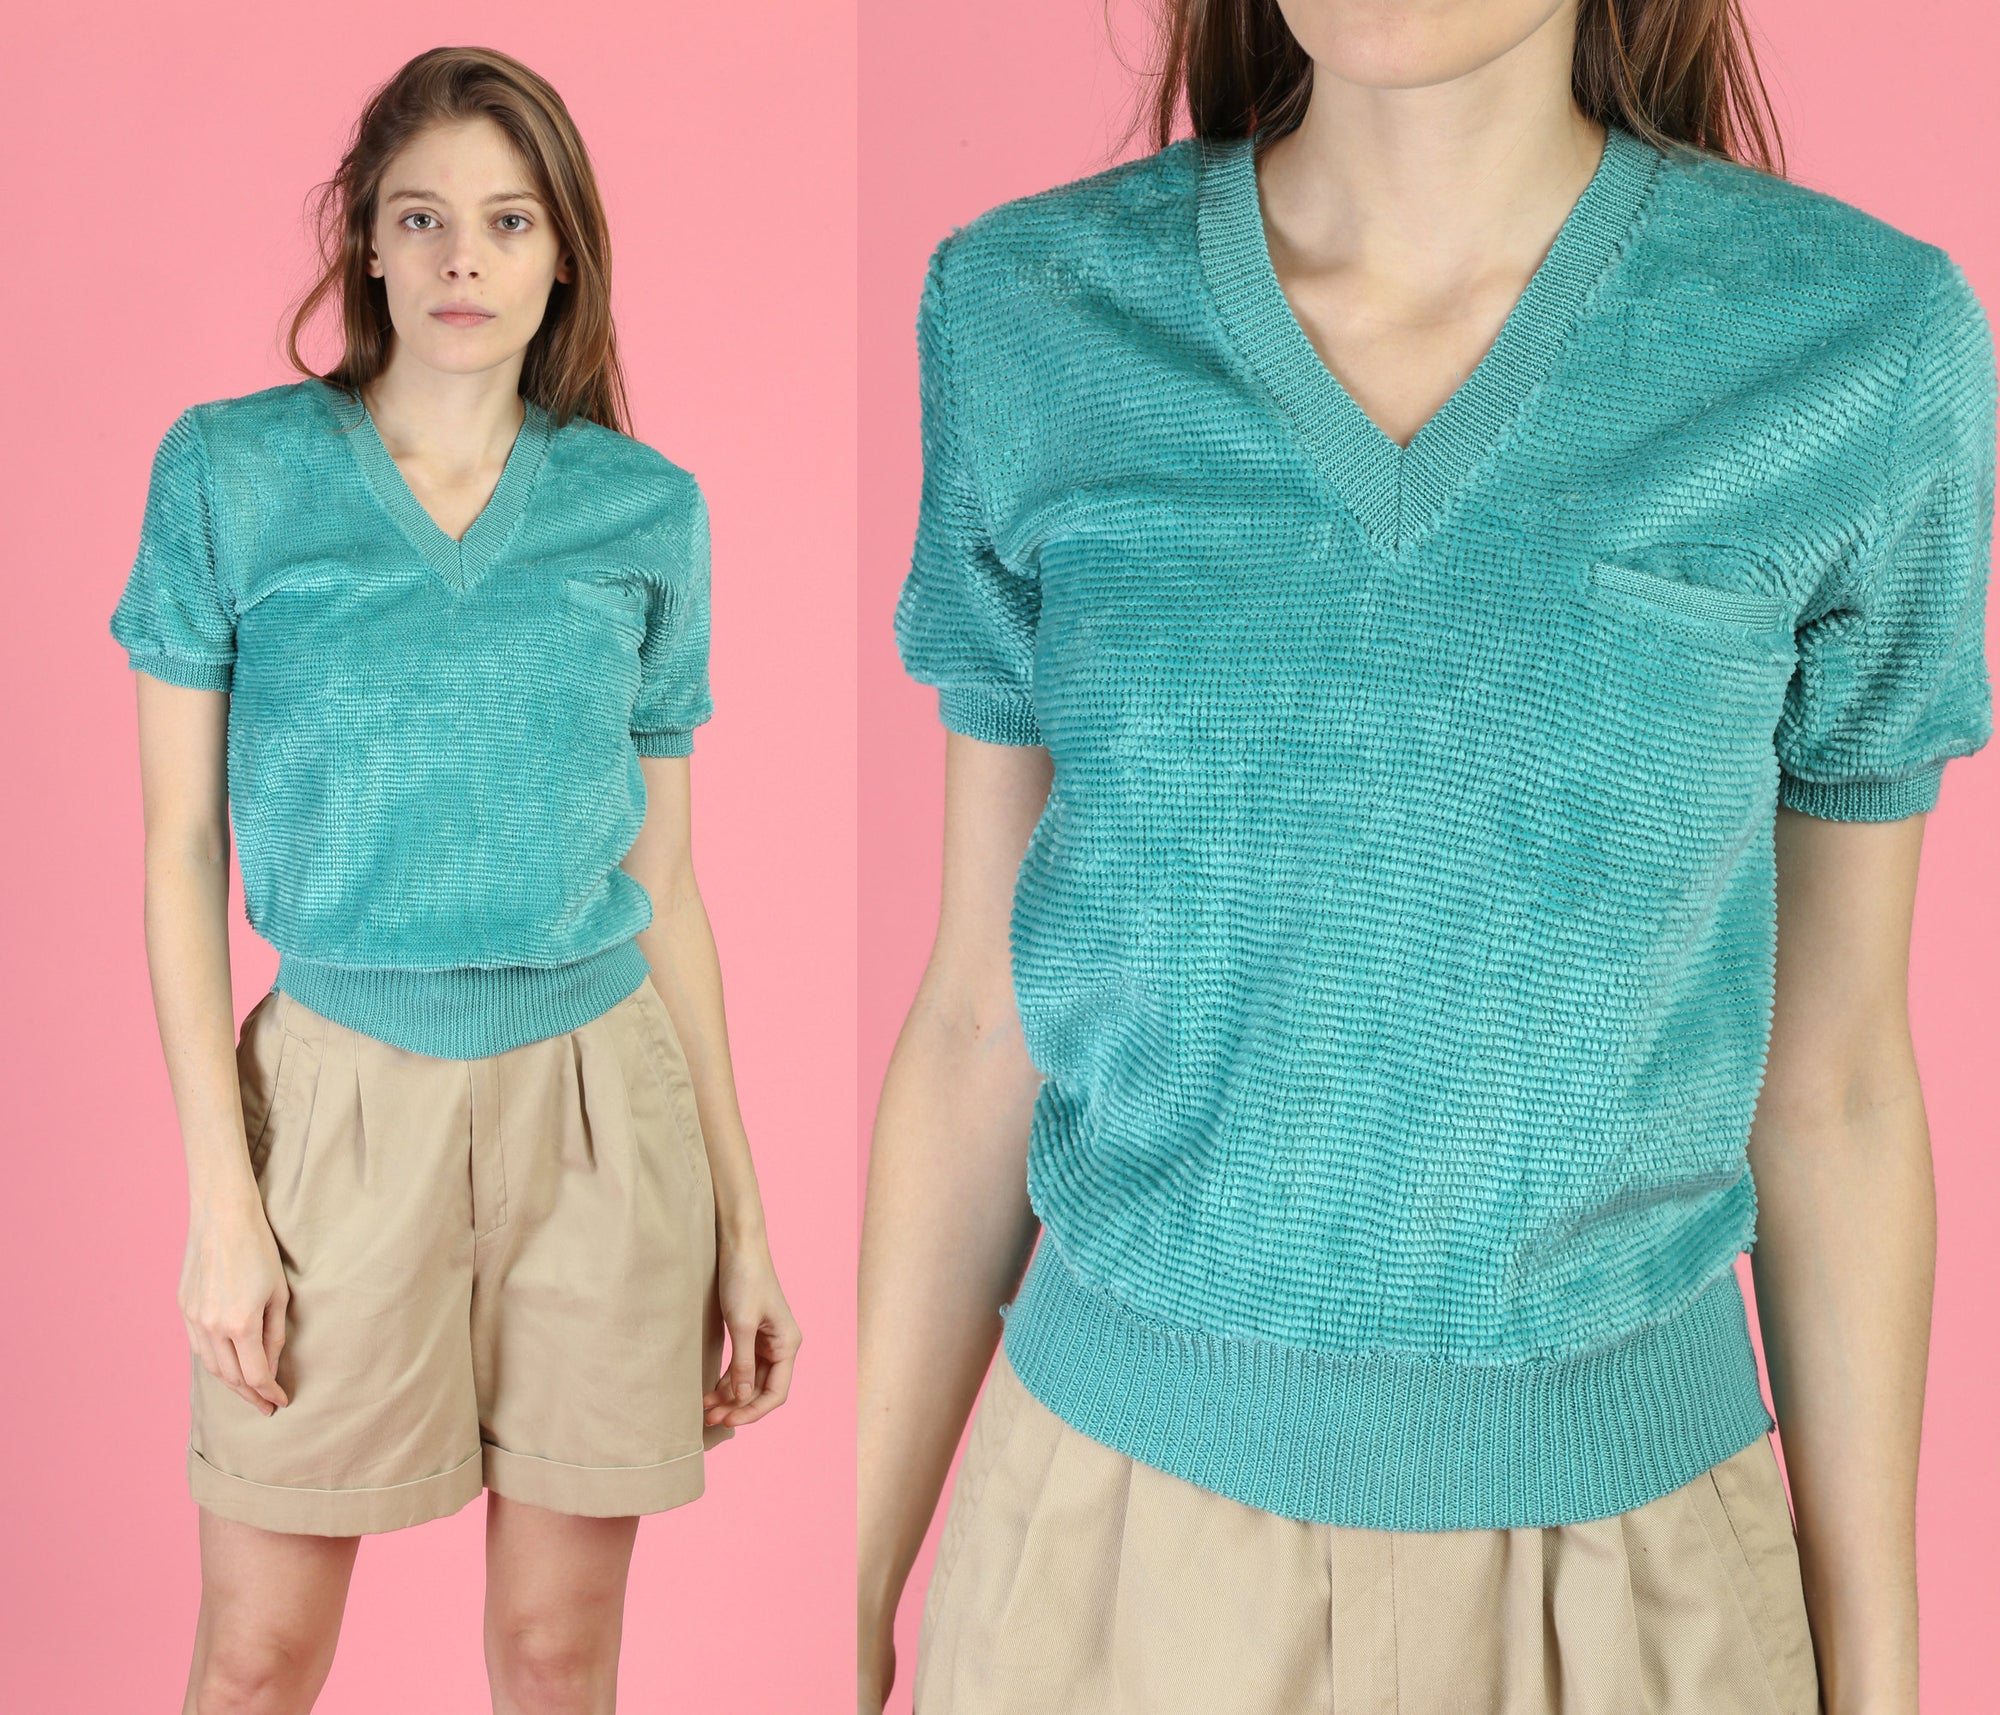 80s Teal Velour Crop Top - Small to Medium